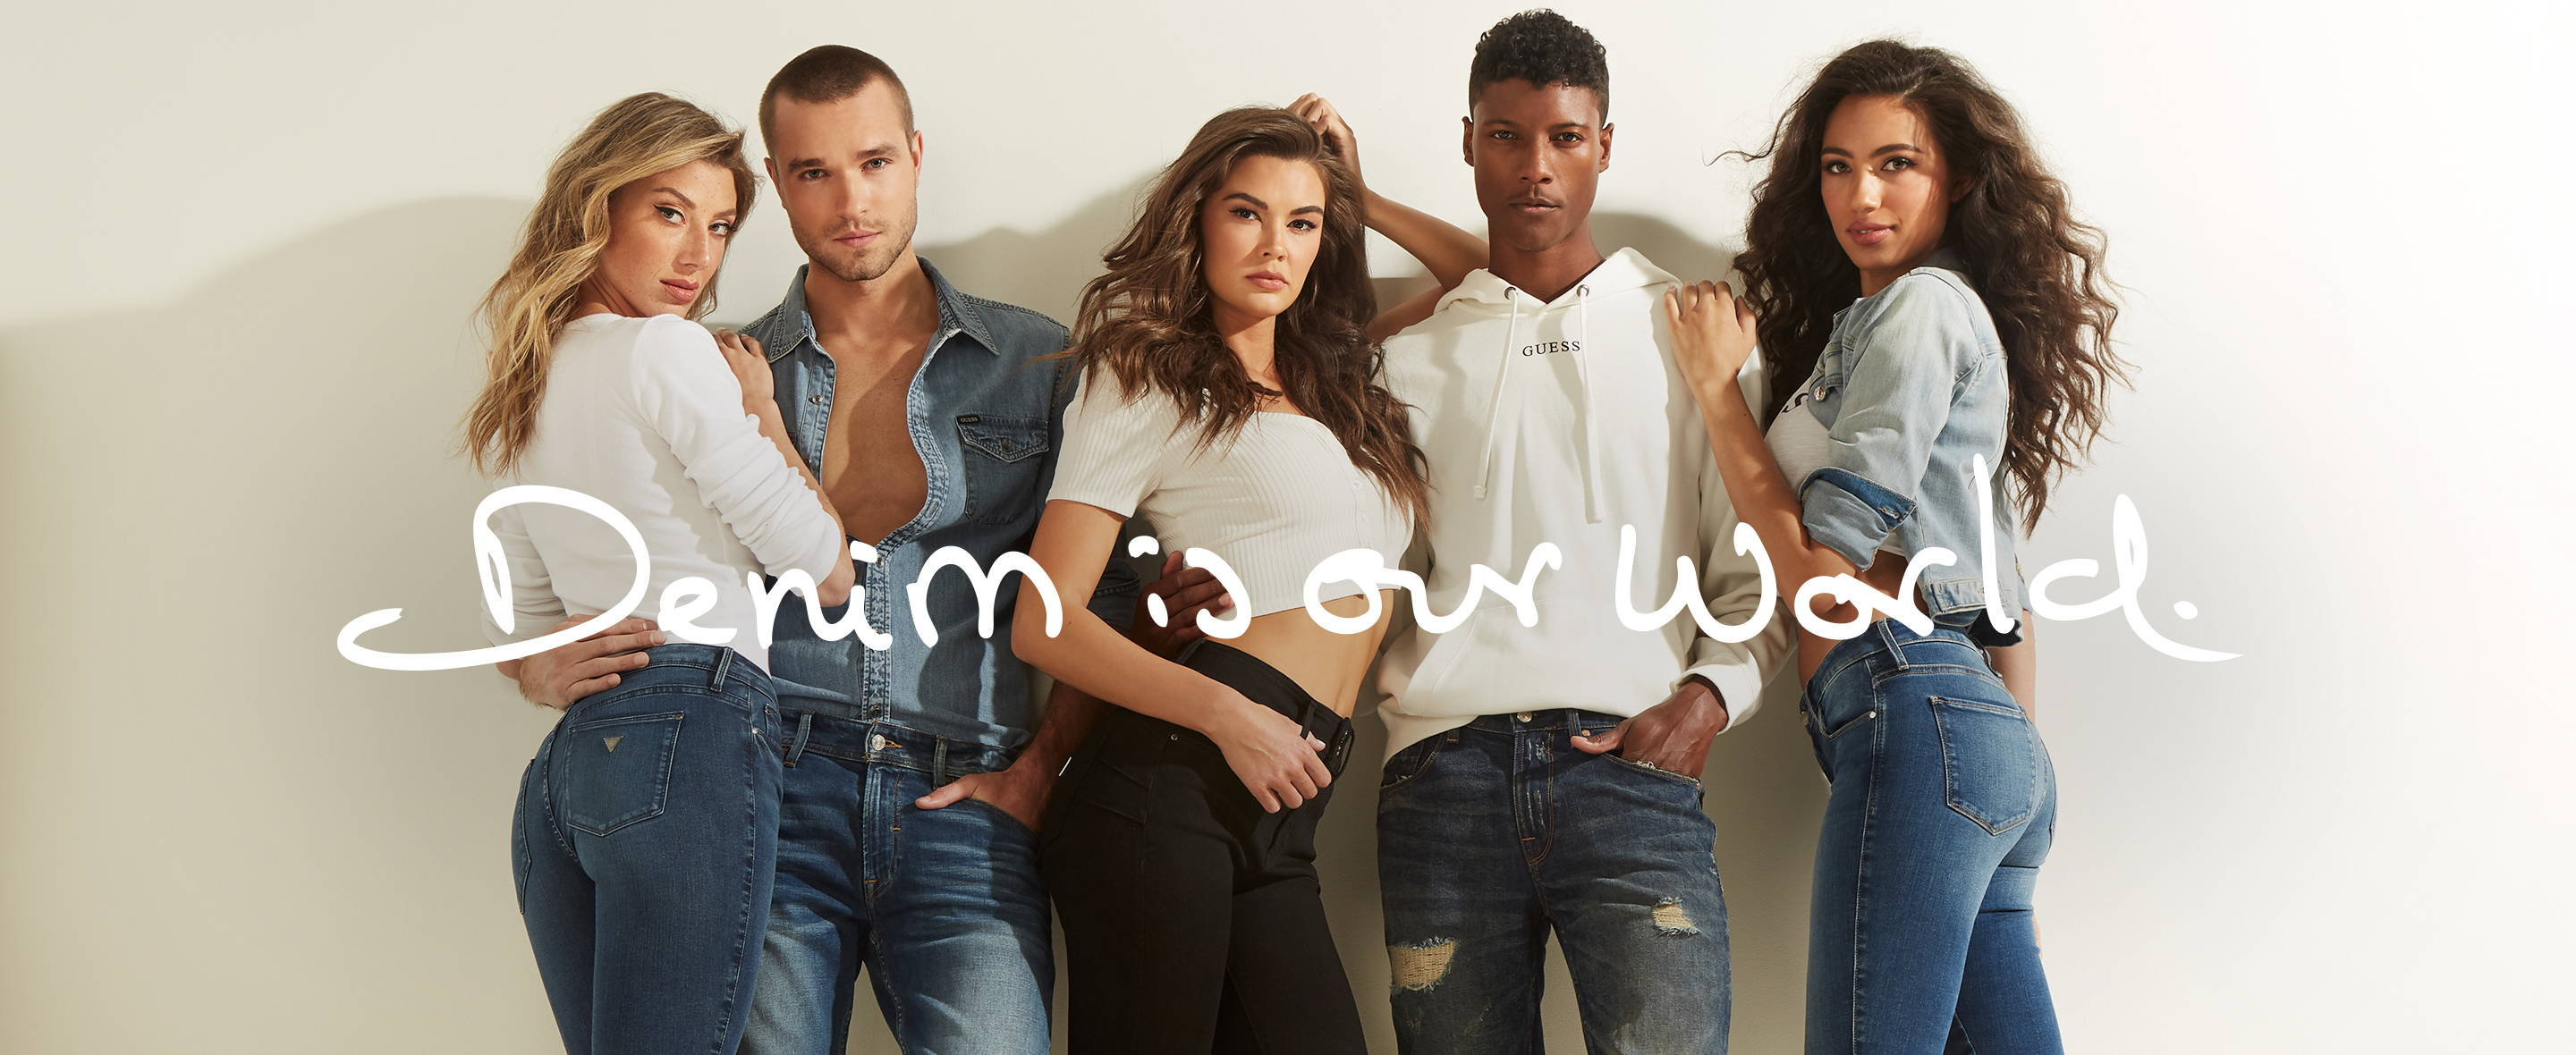 a group of people wearing GUESS denim jeans and tops